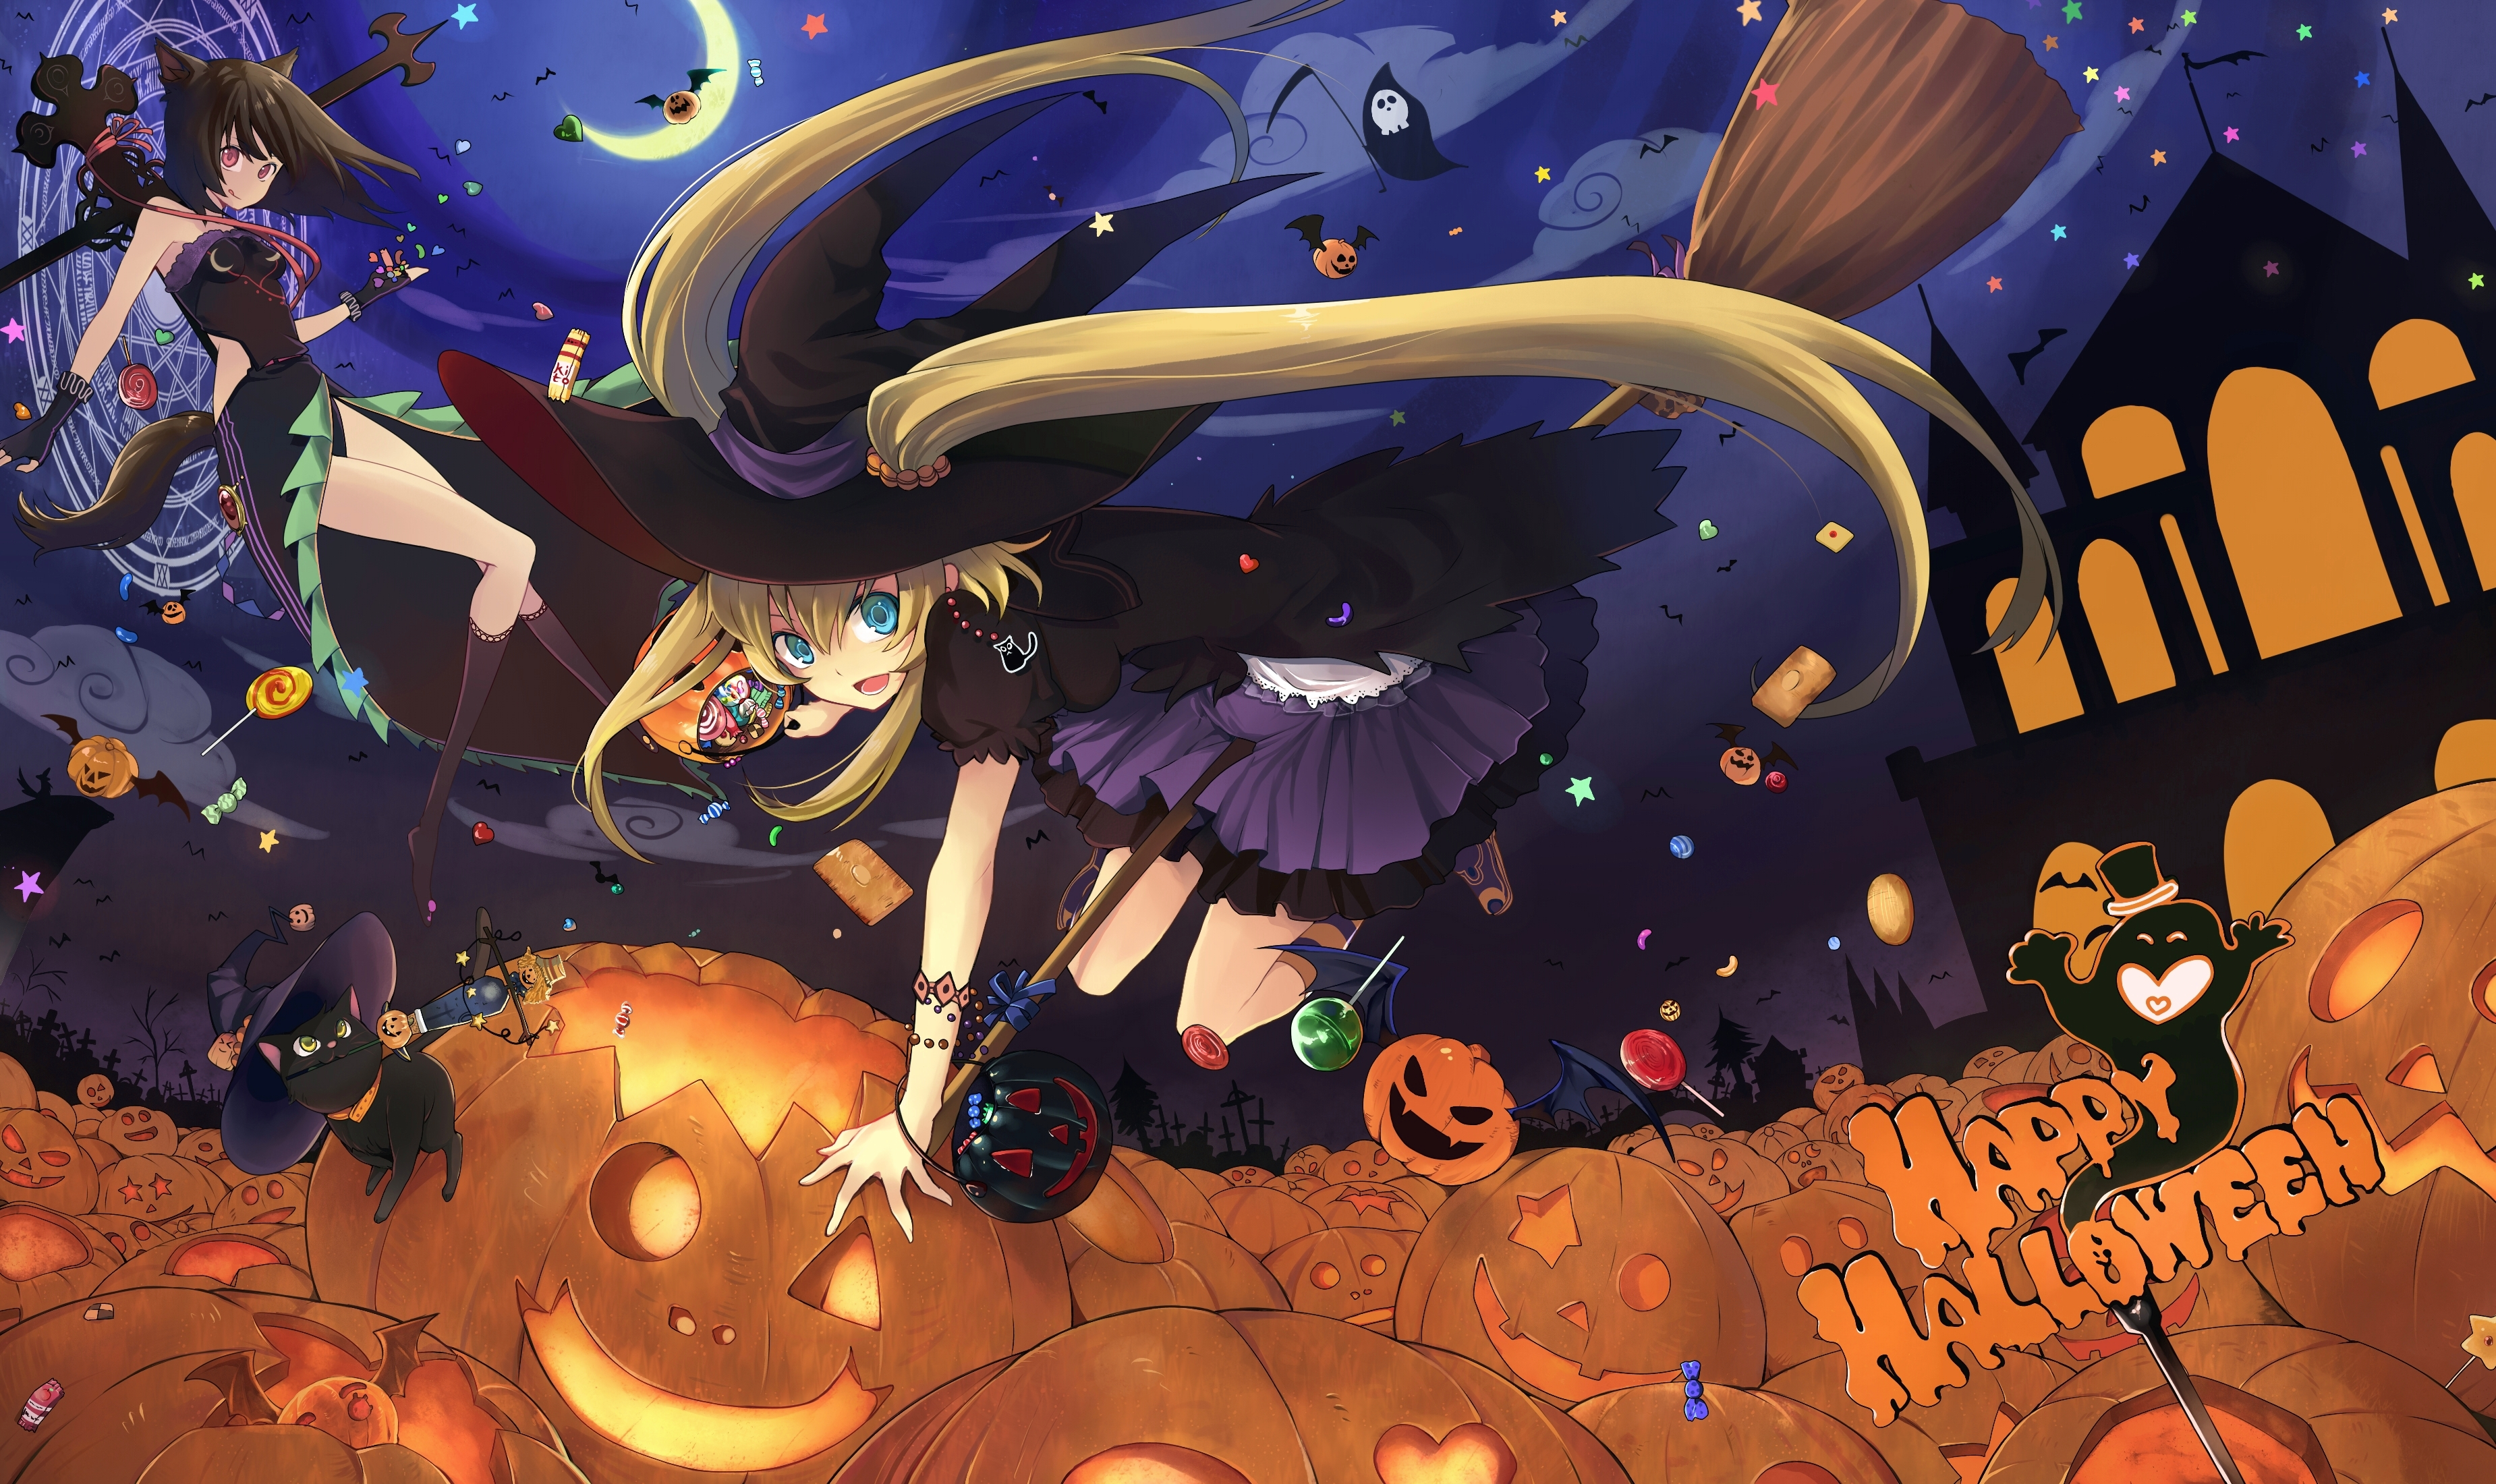 Happy Halloween Anime Fans Of ModDB 2015 image - Indie DB